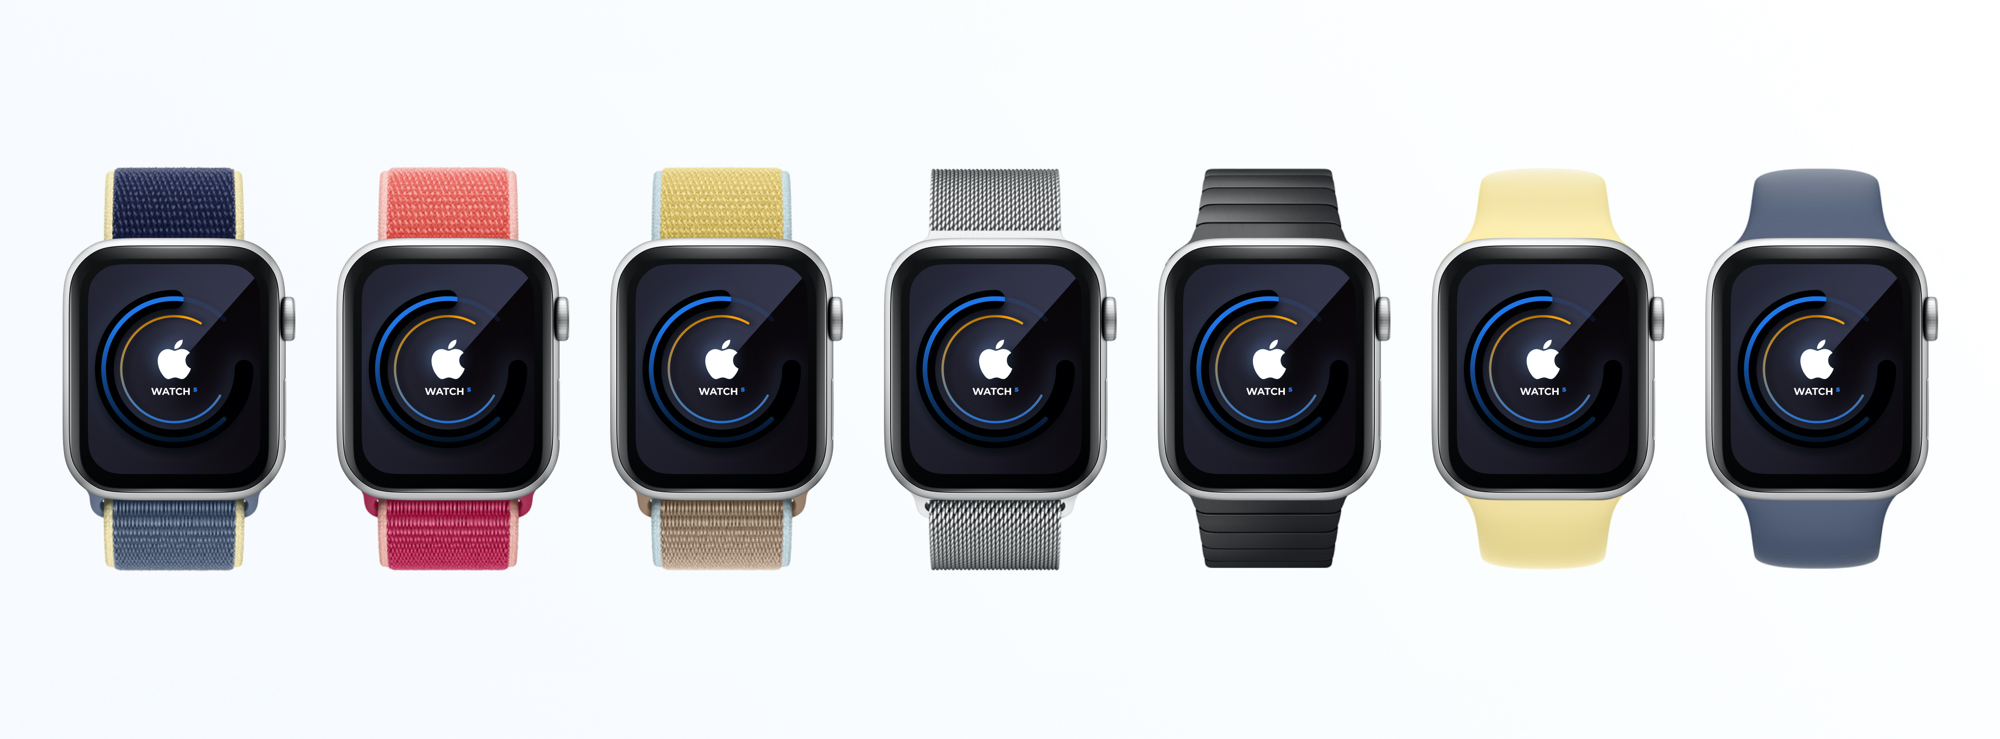 Apple Watch Mockup - In this mockup, you'll find an Apple watch ready to showcase your beautiful design solutions. For those that are starting designing for smartwatches or for the expert ones, having a simple, easy and fast way to show your ideas and concepts is a must.